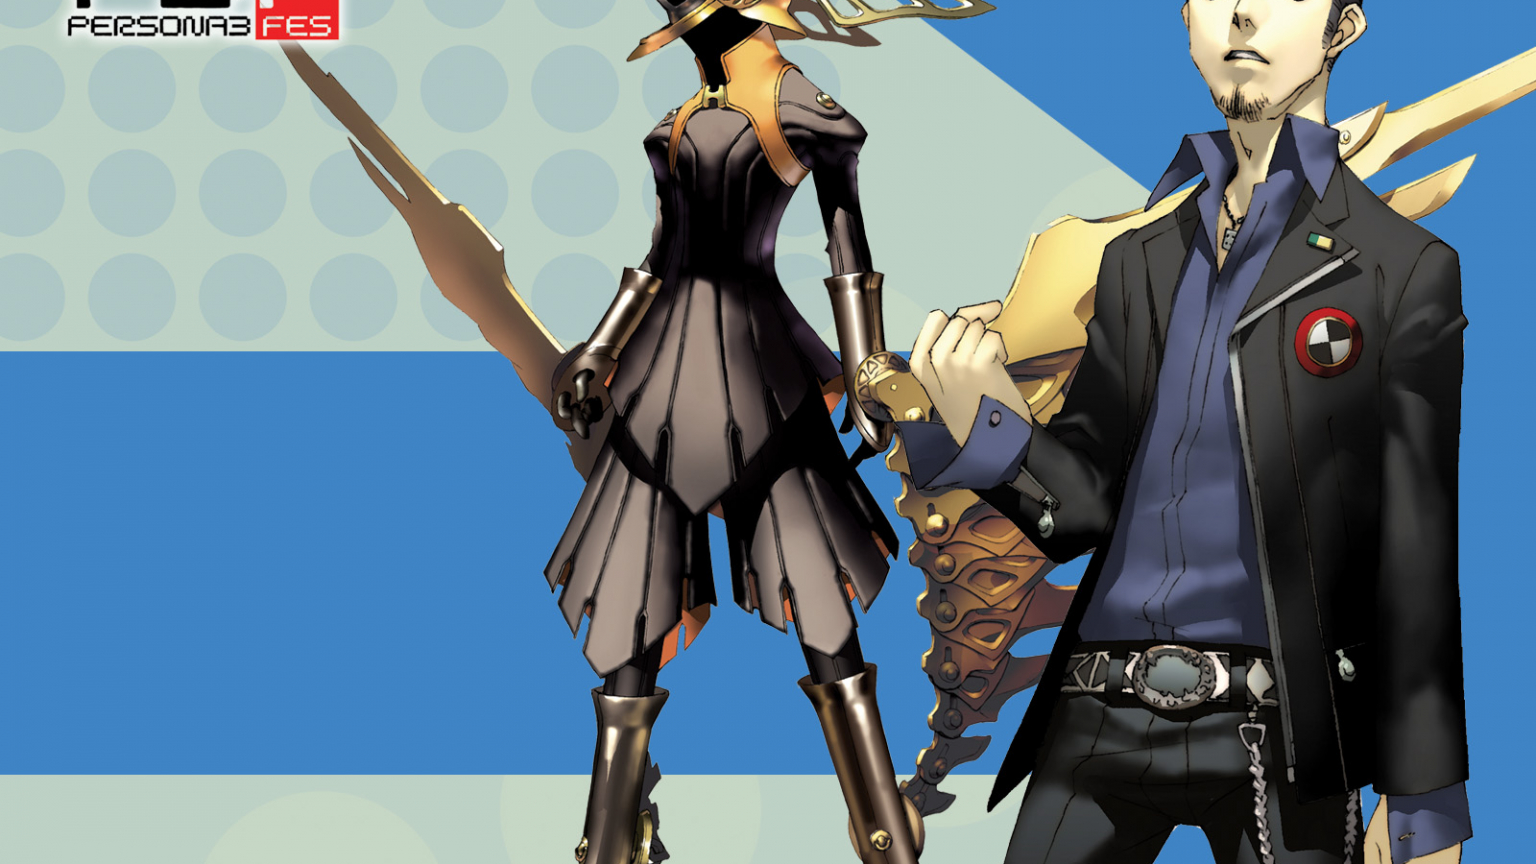 Free Download Persona 3 Fes Wallpaper Wwwhigh Definition